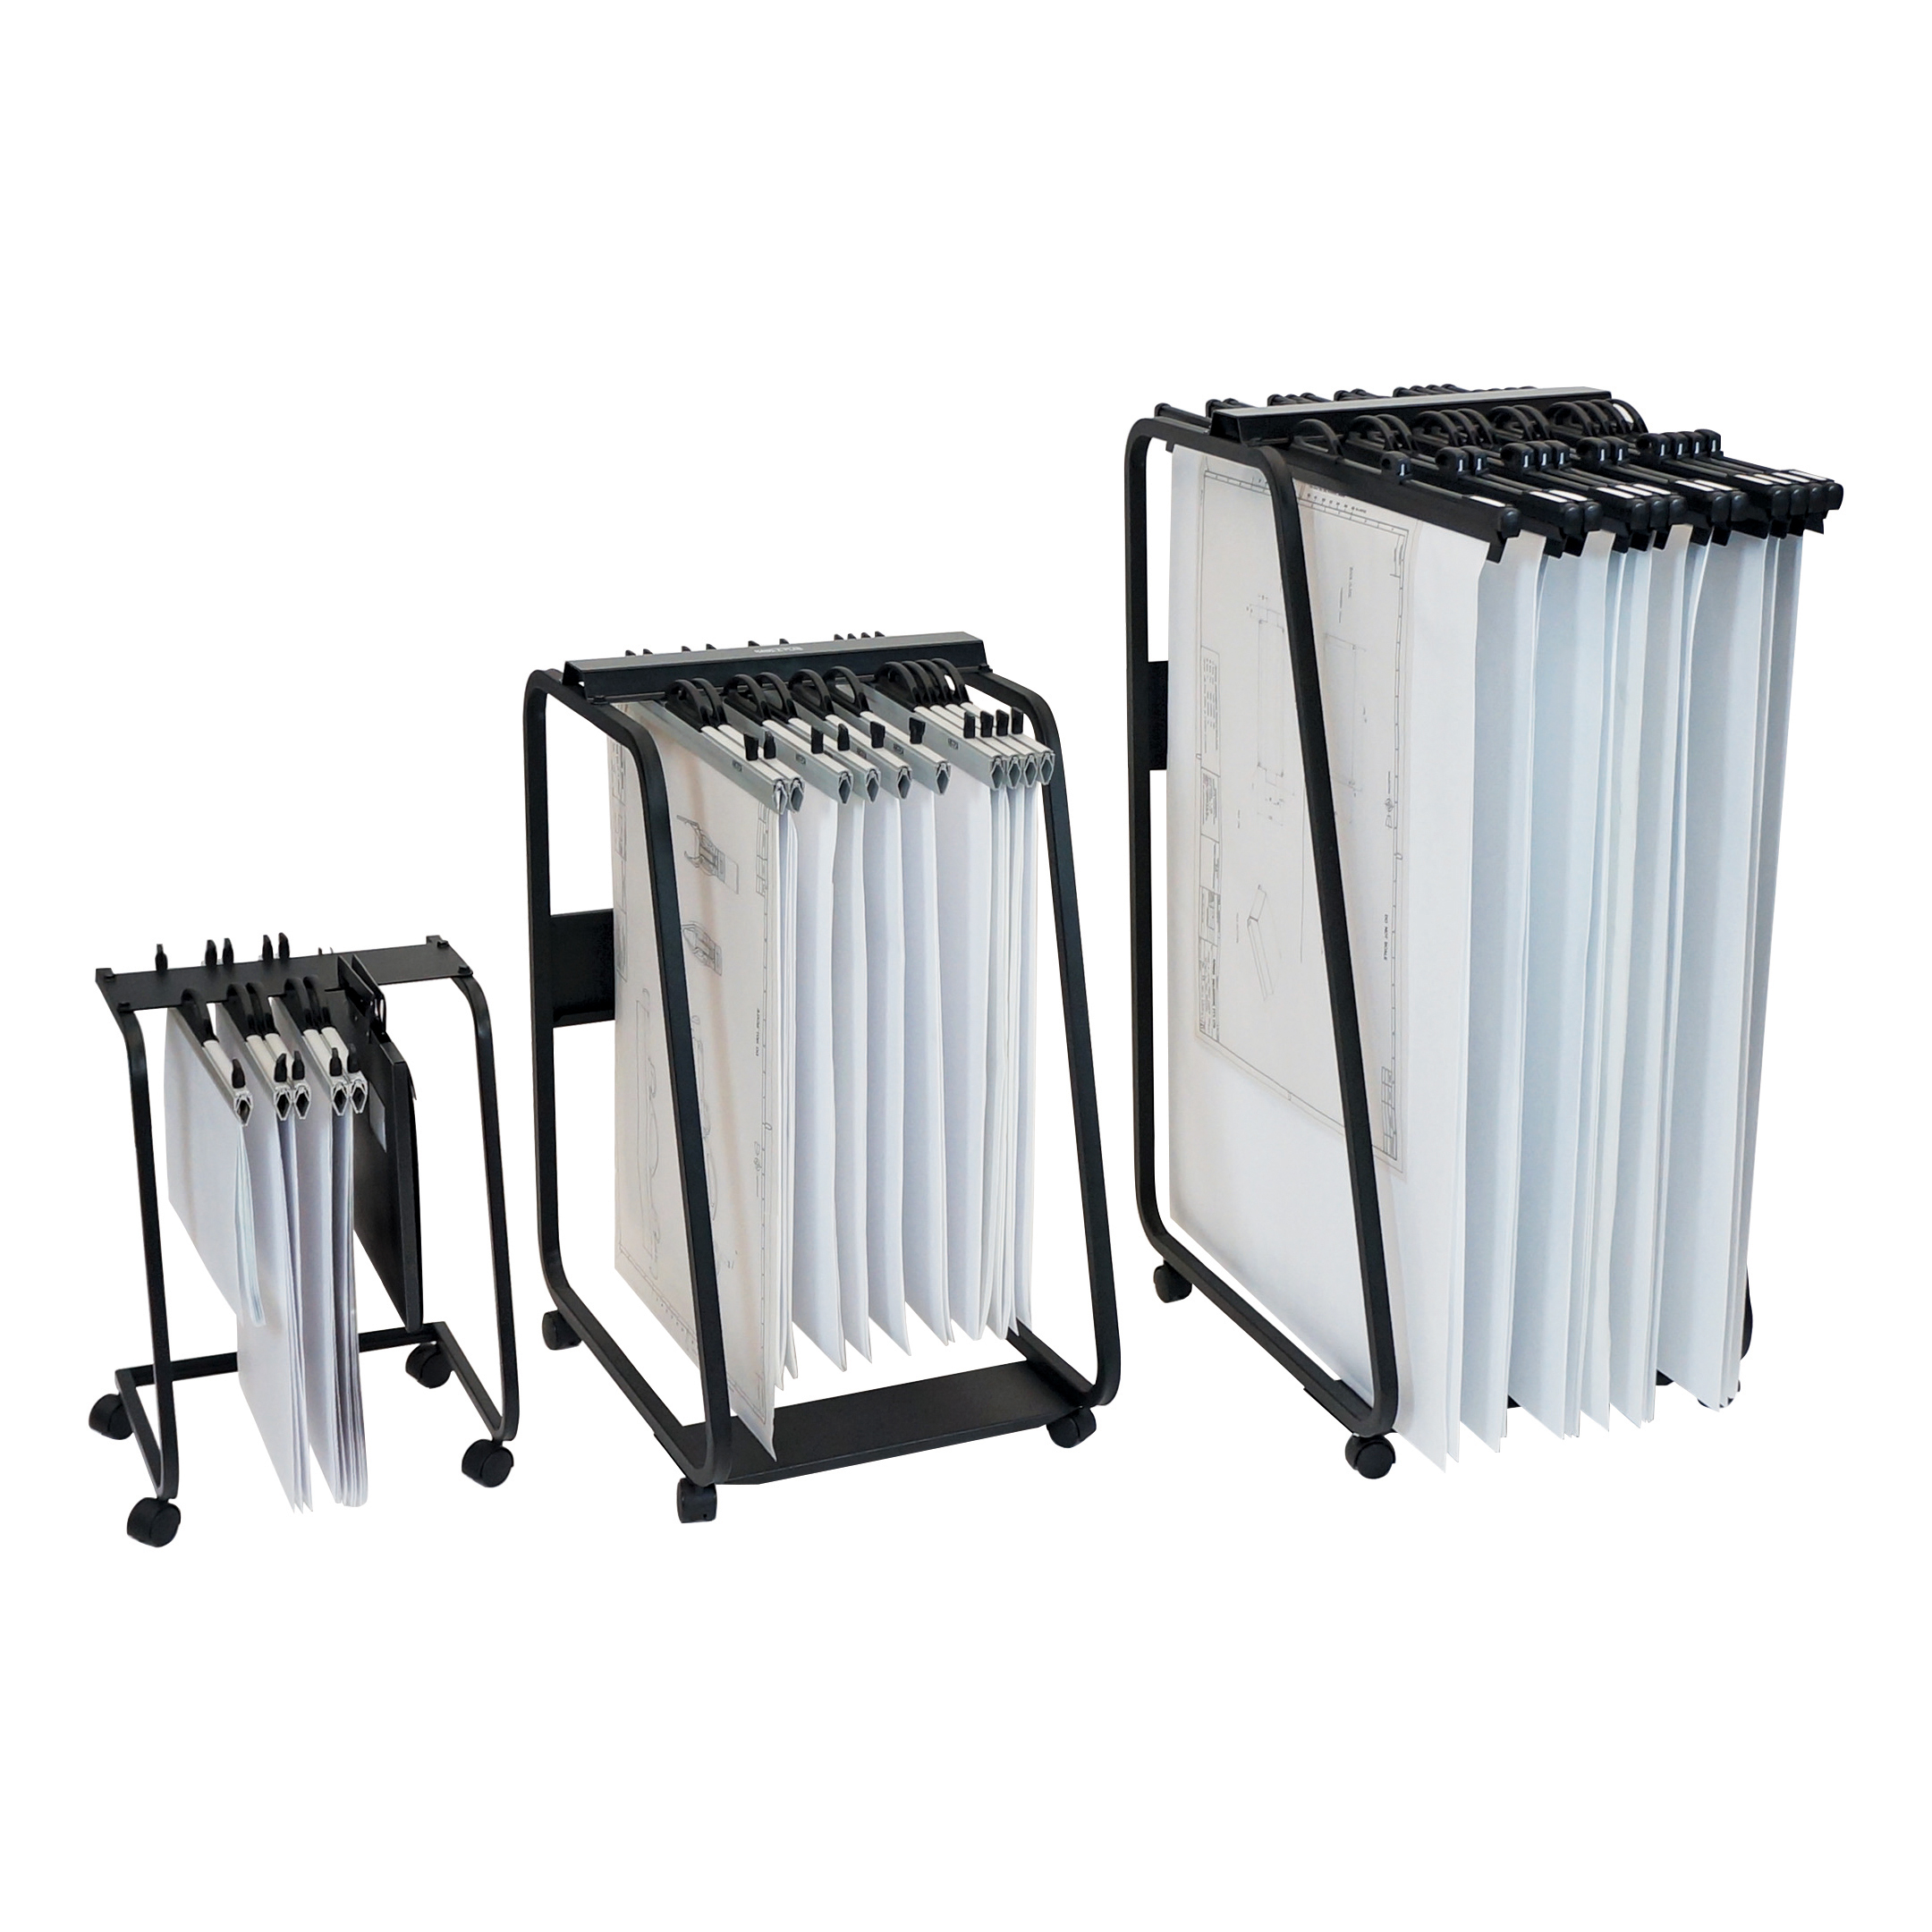 Trolleys or accessories Arnos Hang-A-Plan General Front Load Trolley for Approx 20 Binders A1-A2-B1 W550xD730xH990mm Ref D061